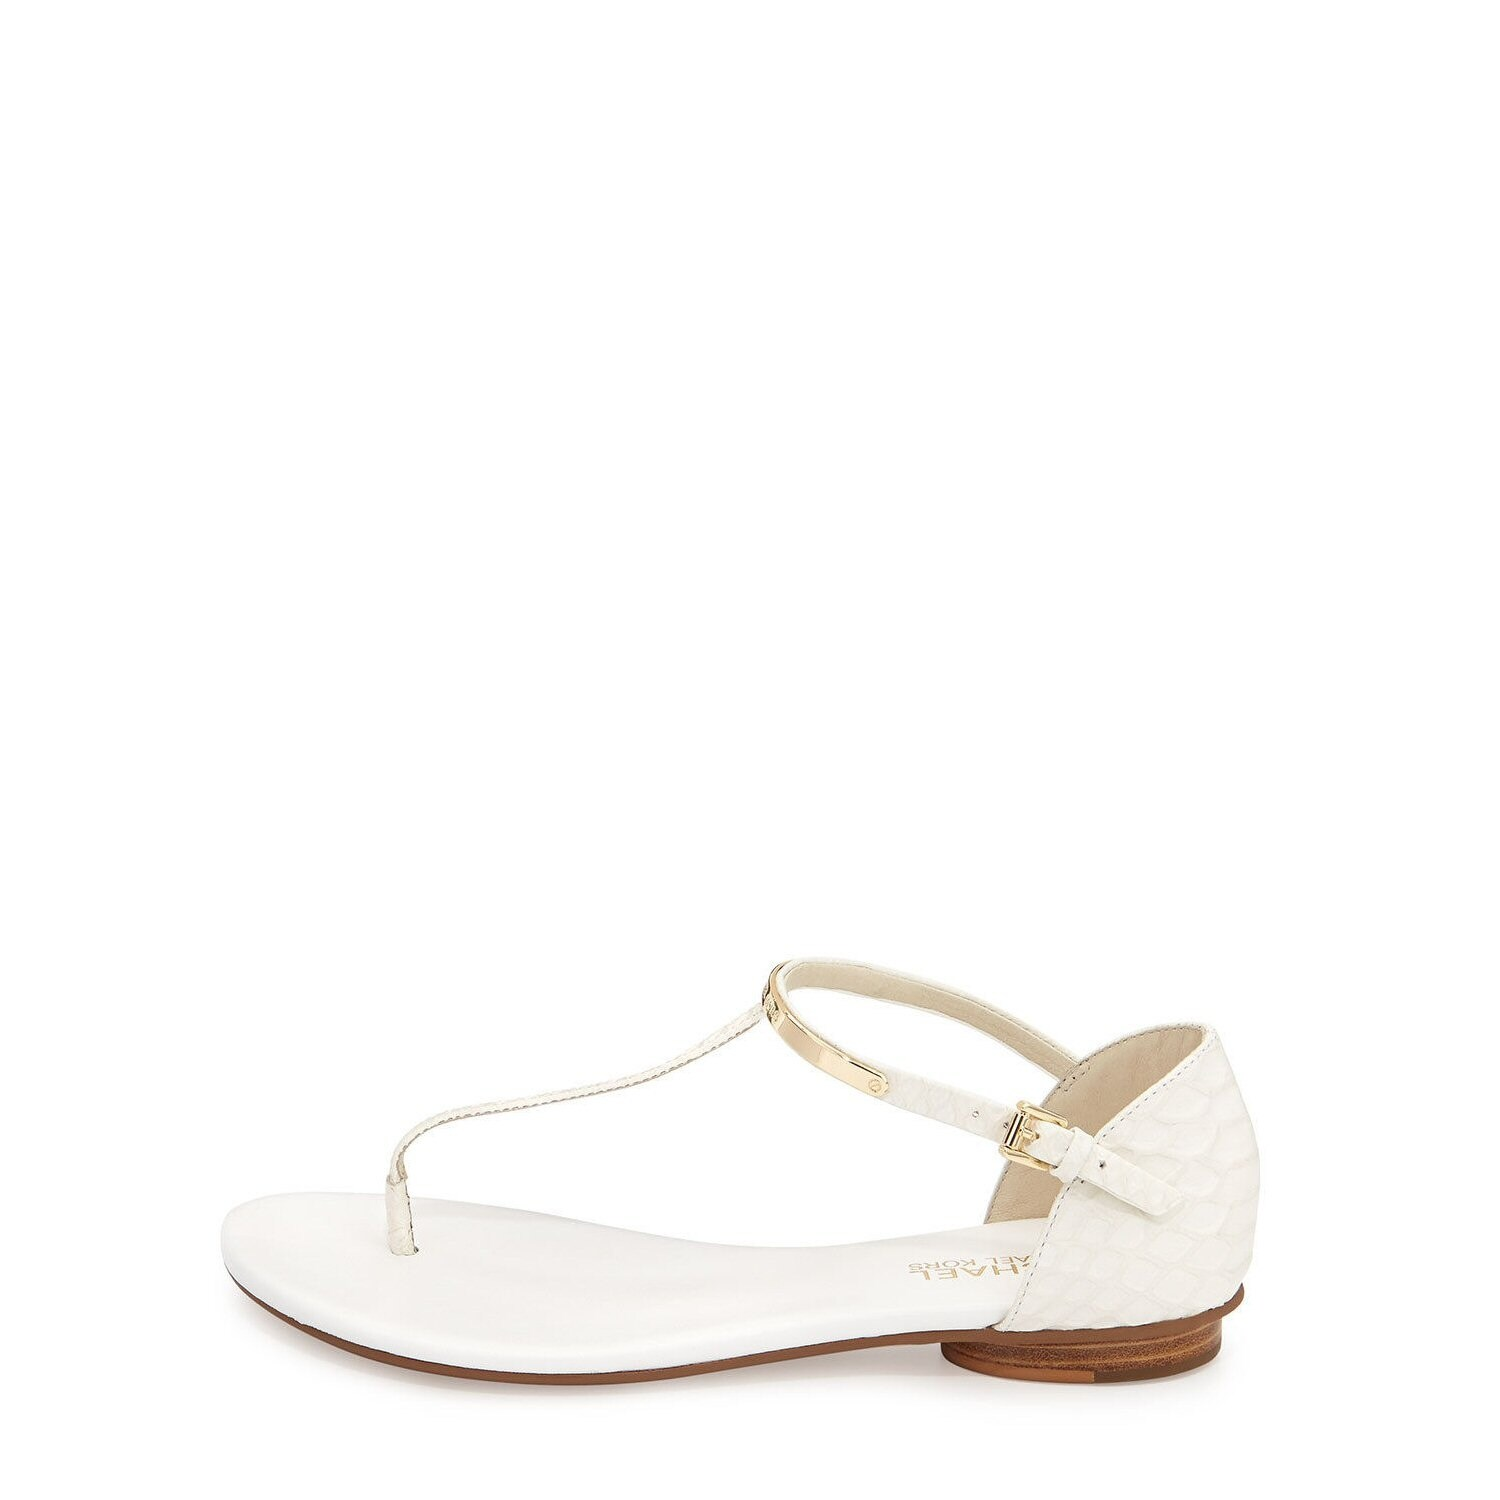 3a78f2a8983 Shop Michael Michael Kors Kristen Embossed Leather Flat Thong Sandals - 6.5  b(m) - Free Shipping Today - Overstock - 14407568